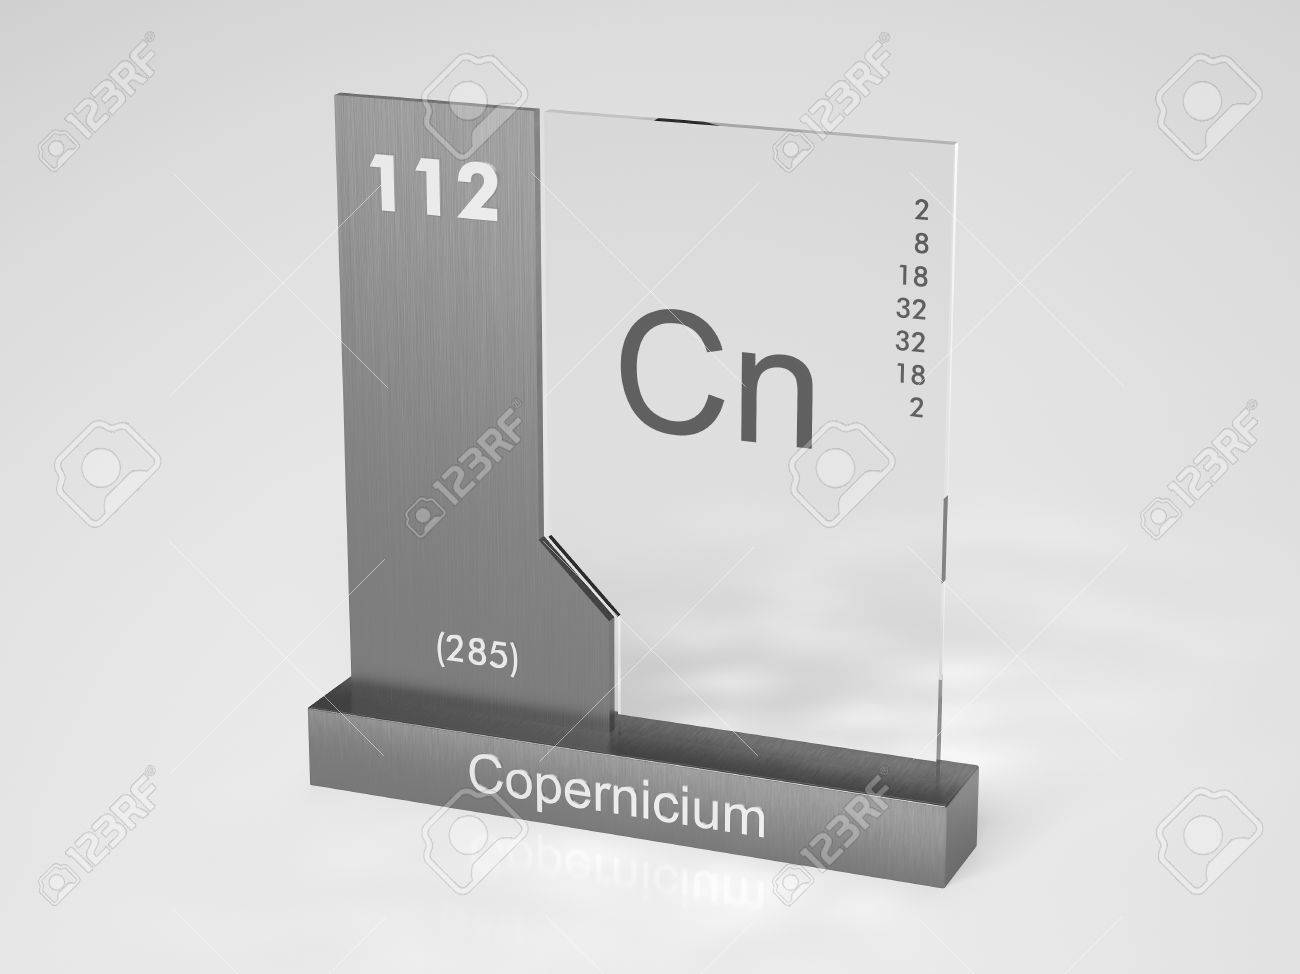 Carbon dioxide periodic table symbol gallery periodic table images what is cn on the periodic table aviongoldcorp copernicium symbol cn chemical element of the periodic gamestrikefo Gallery